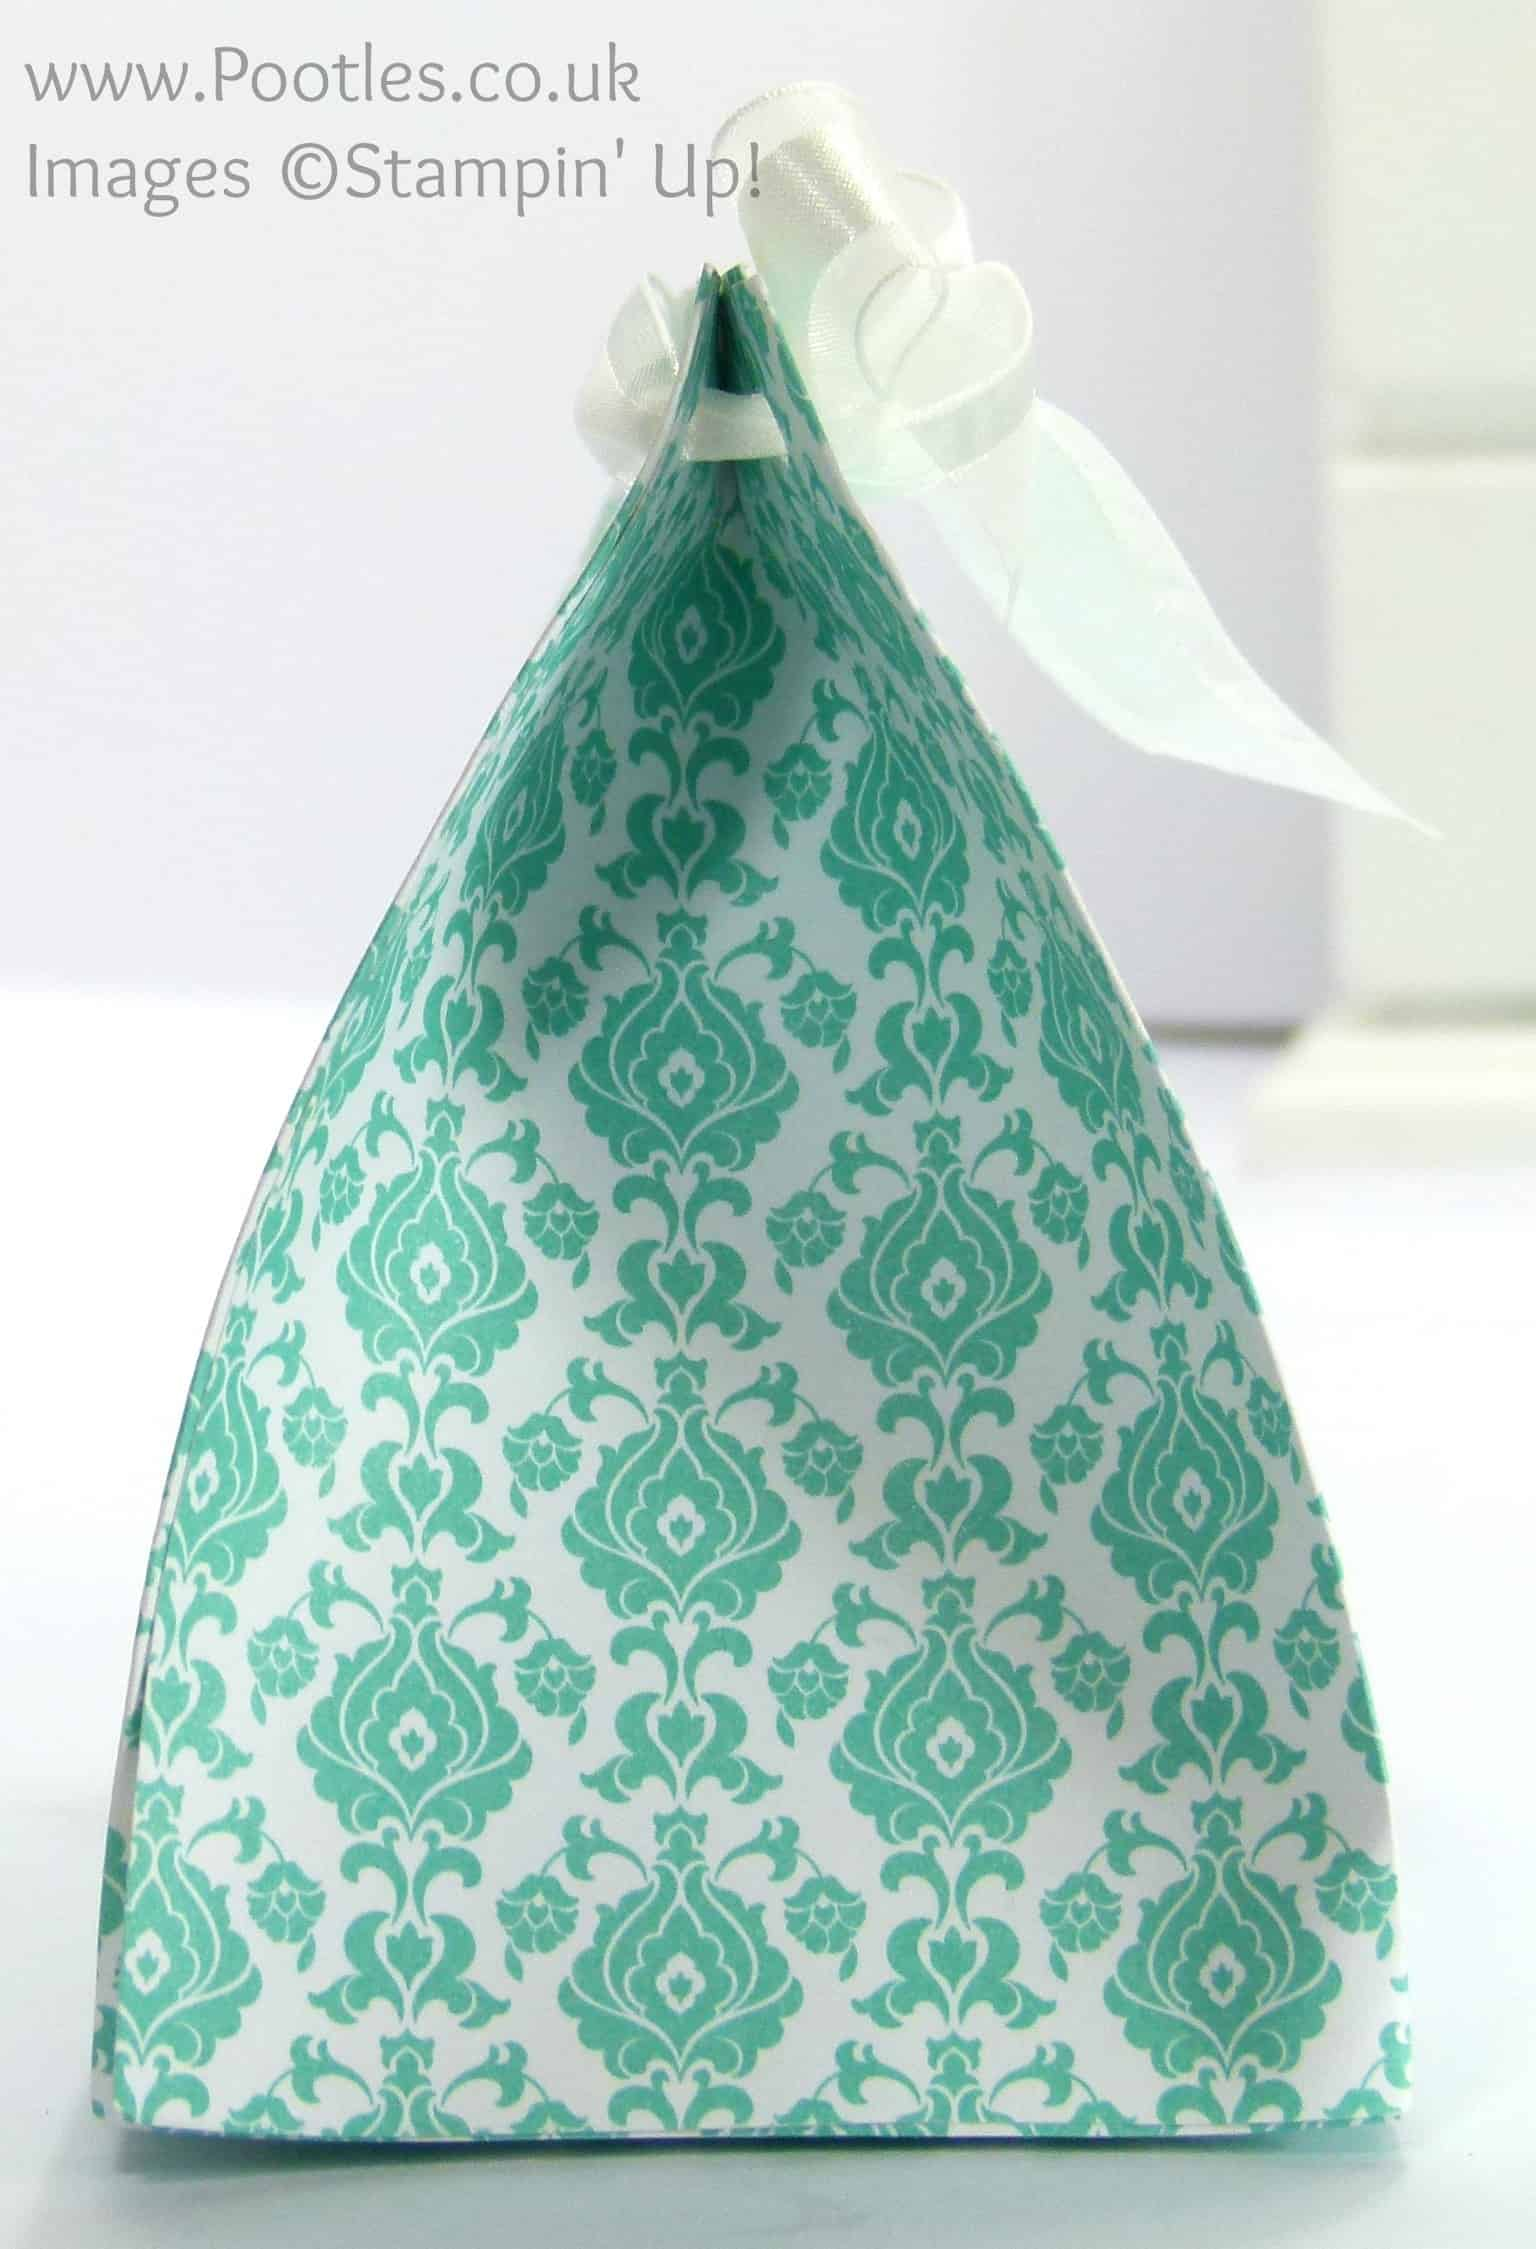 Stampin' Up! UK Demonstrator Pootles - Wide Fat Bag using Stampin' Up! UK Eastern Elegance DSP Side Profile